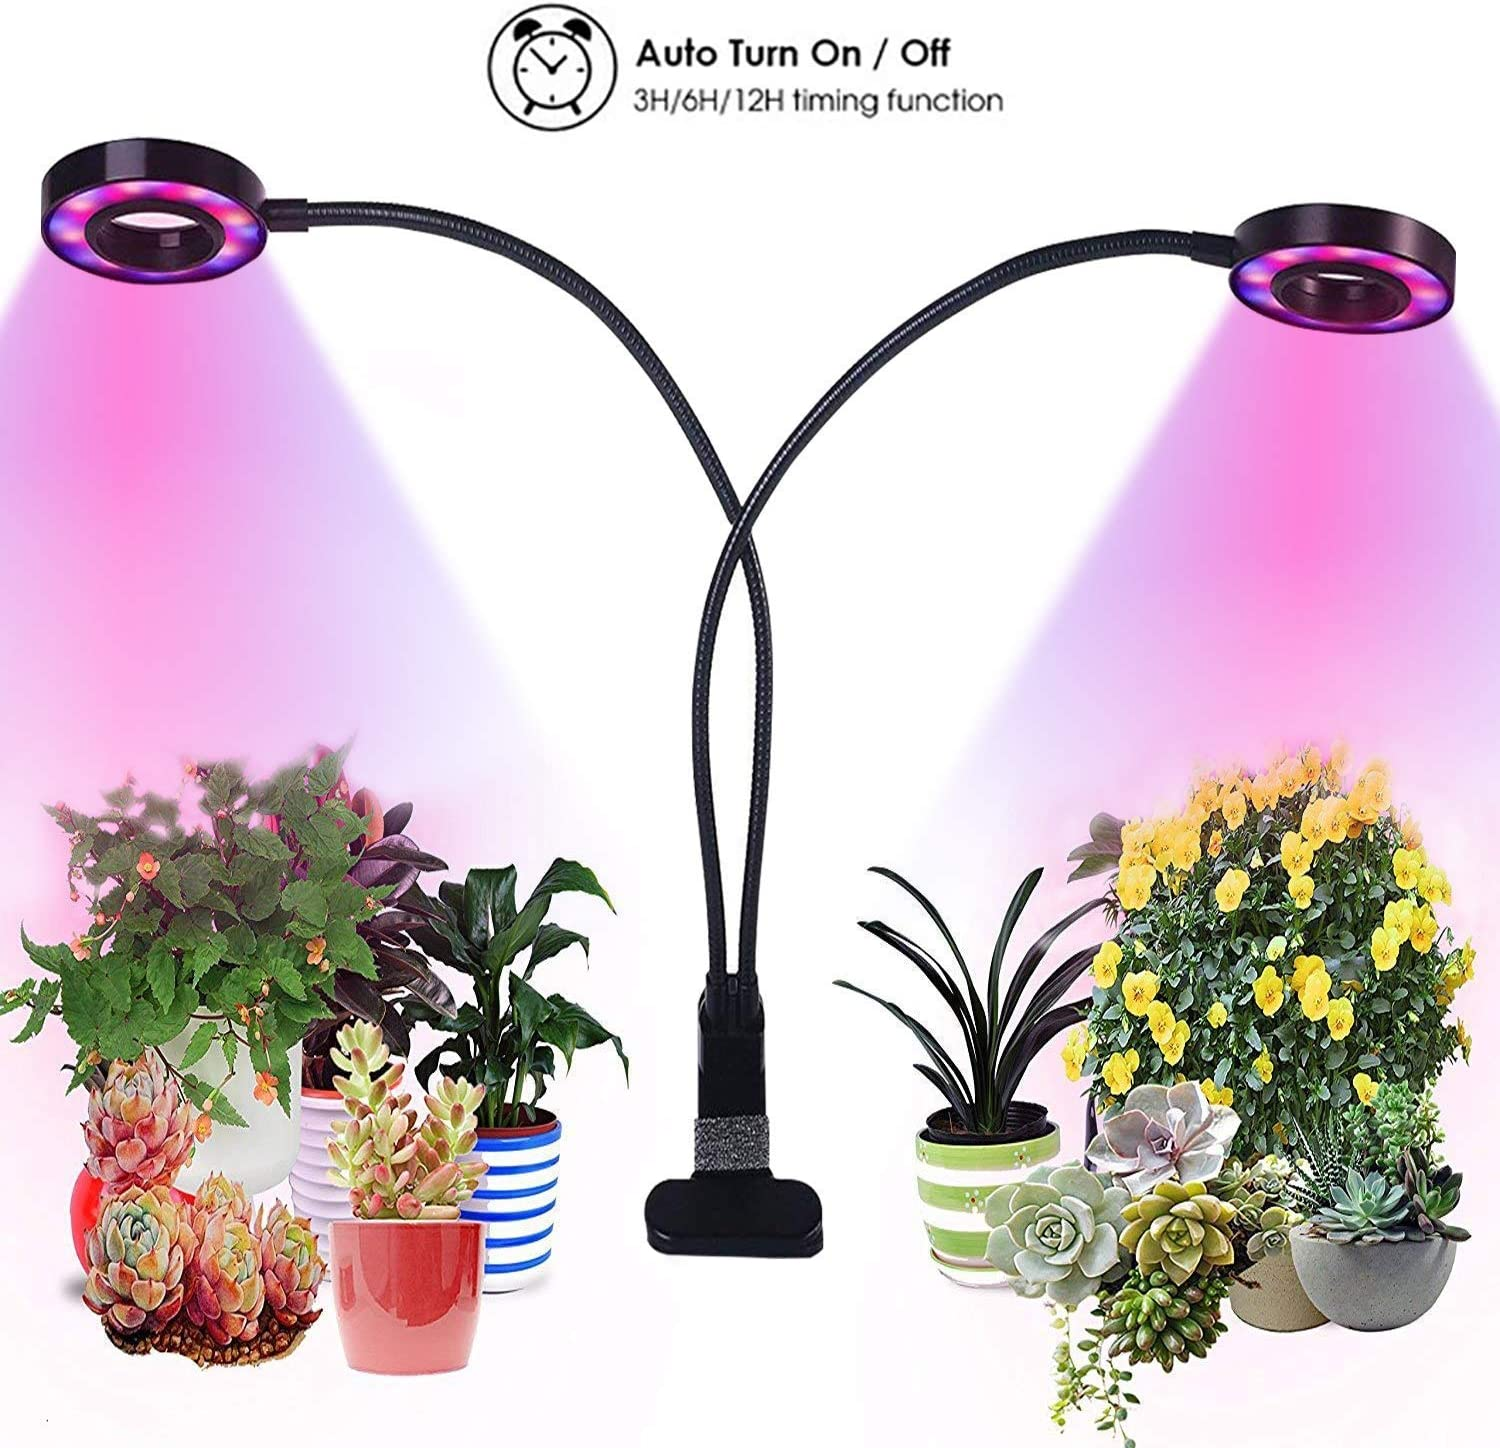 Grow Lights for Indoor Plants,Growstar 20W Dual Head Plant Lamp with 3 6 12H Timer Red Blue White Spectrum 360 Degree Flexible Gooseneck 3 Switch Modes Gardening Office Reading 2019 Latest Upgrade